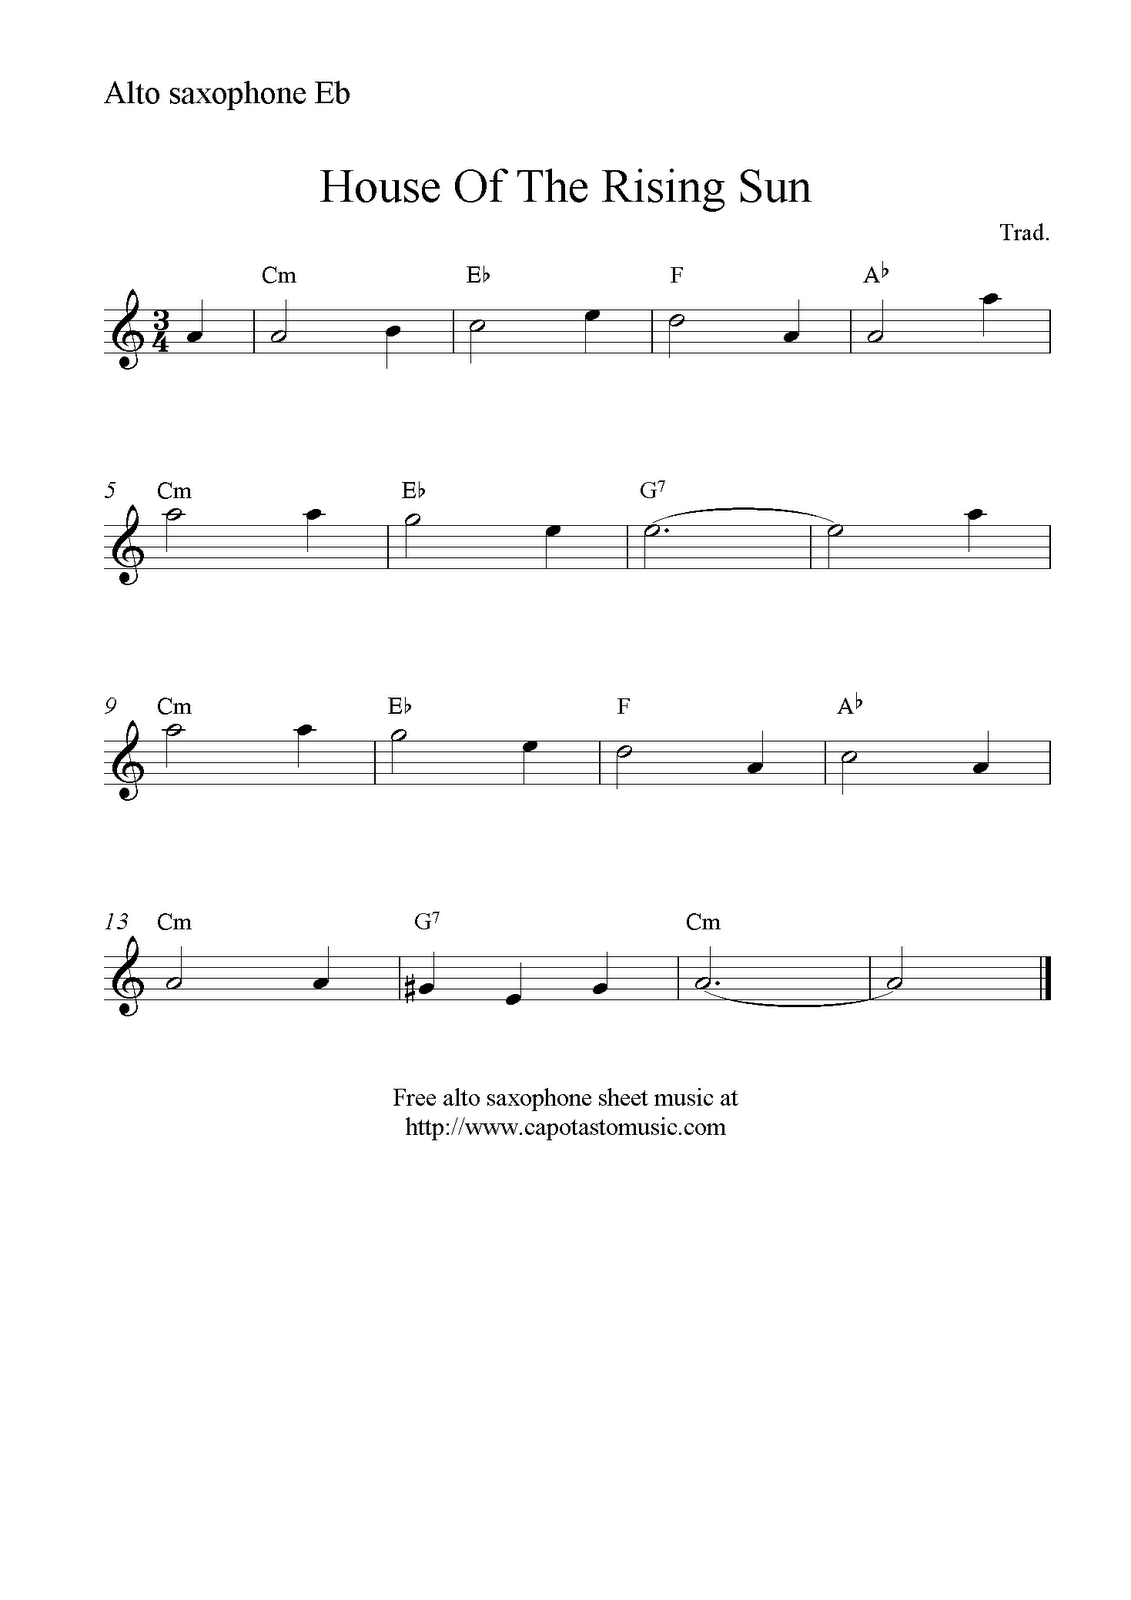 House Of The Rising Sun, Free Alto Saxophone Sheet Music Notes - Free Printable Alto Saxophone Sheet Music